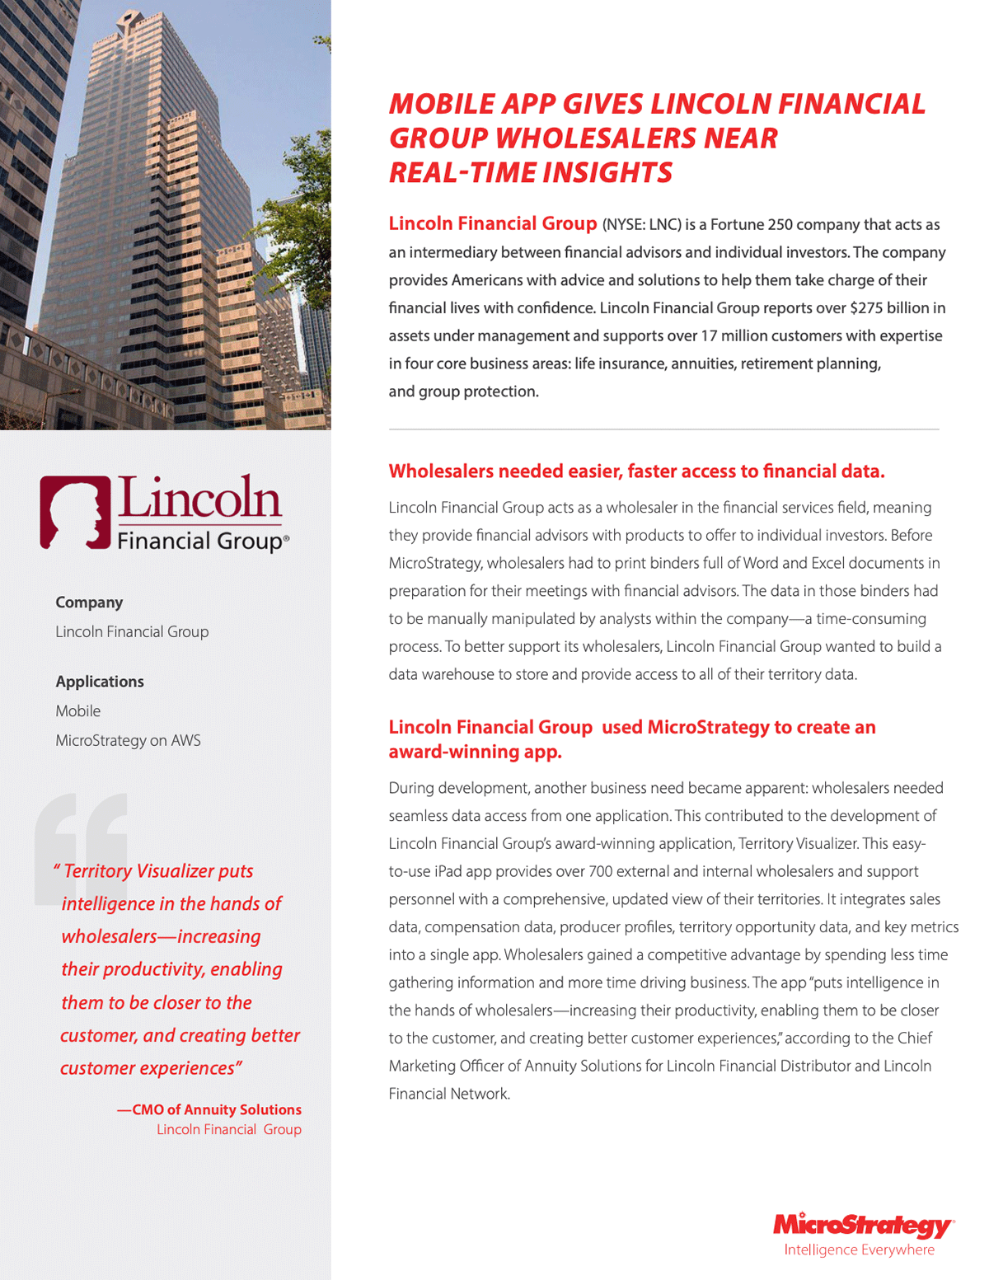 Lincoln Financial Group helps wholesalers with near real-time insights